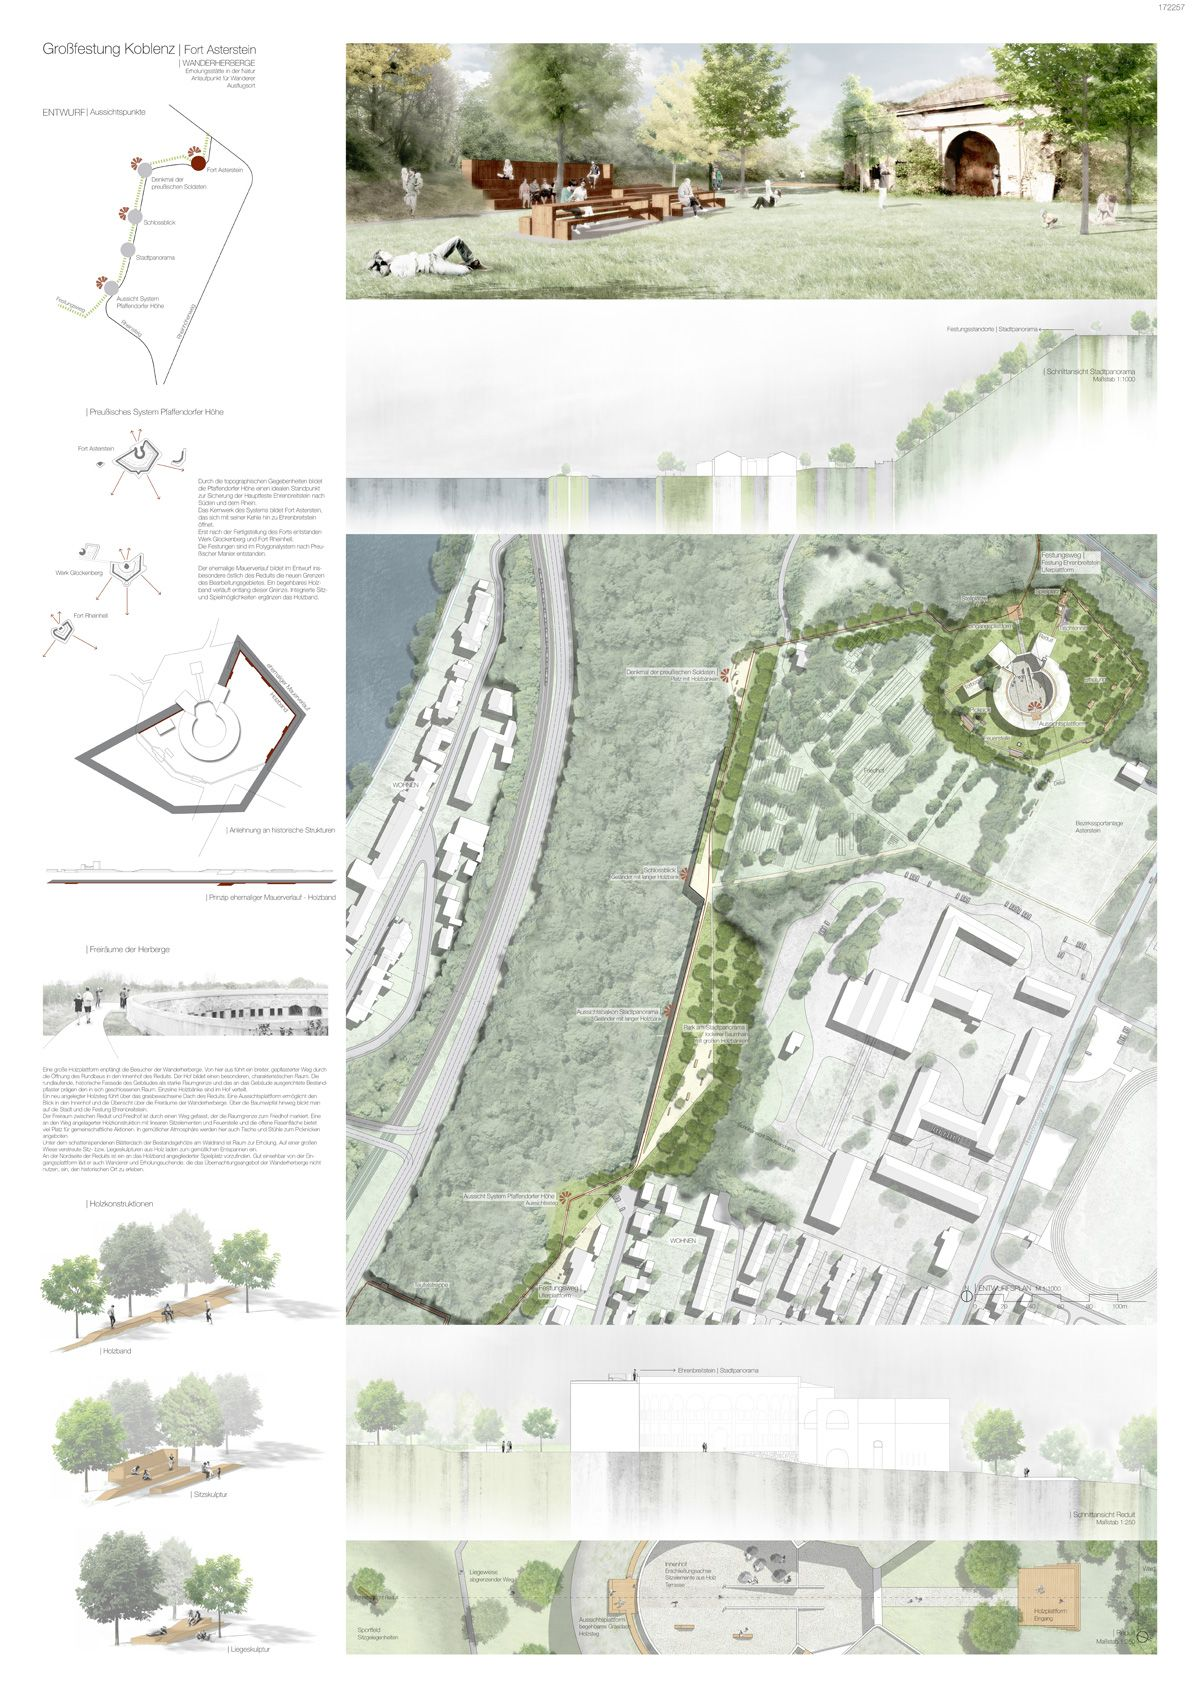 Martin ermer 2014 neueurbanegr ne via competitionline for Architektur layouts